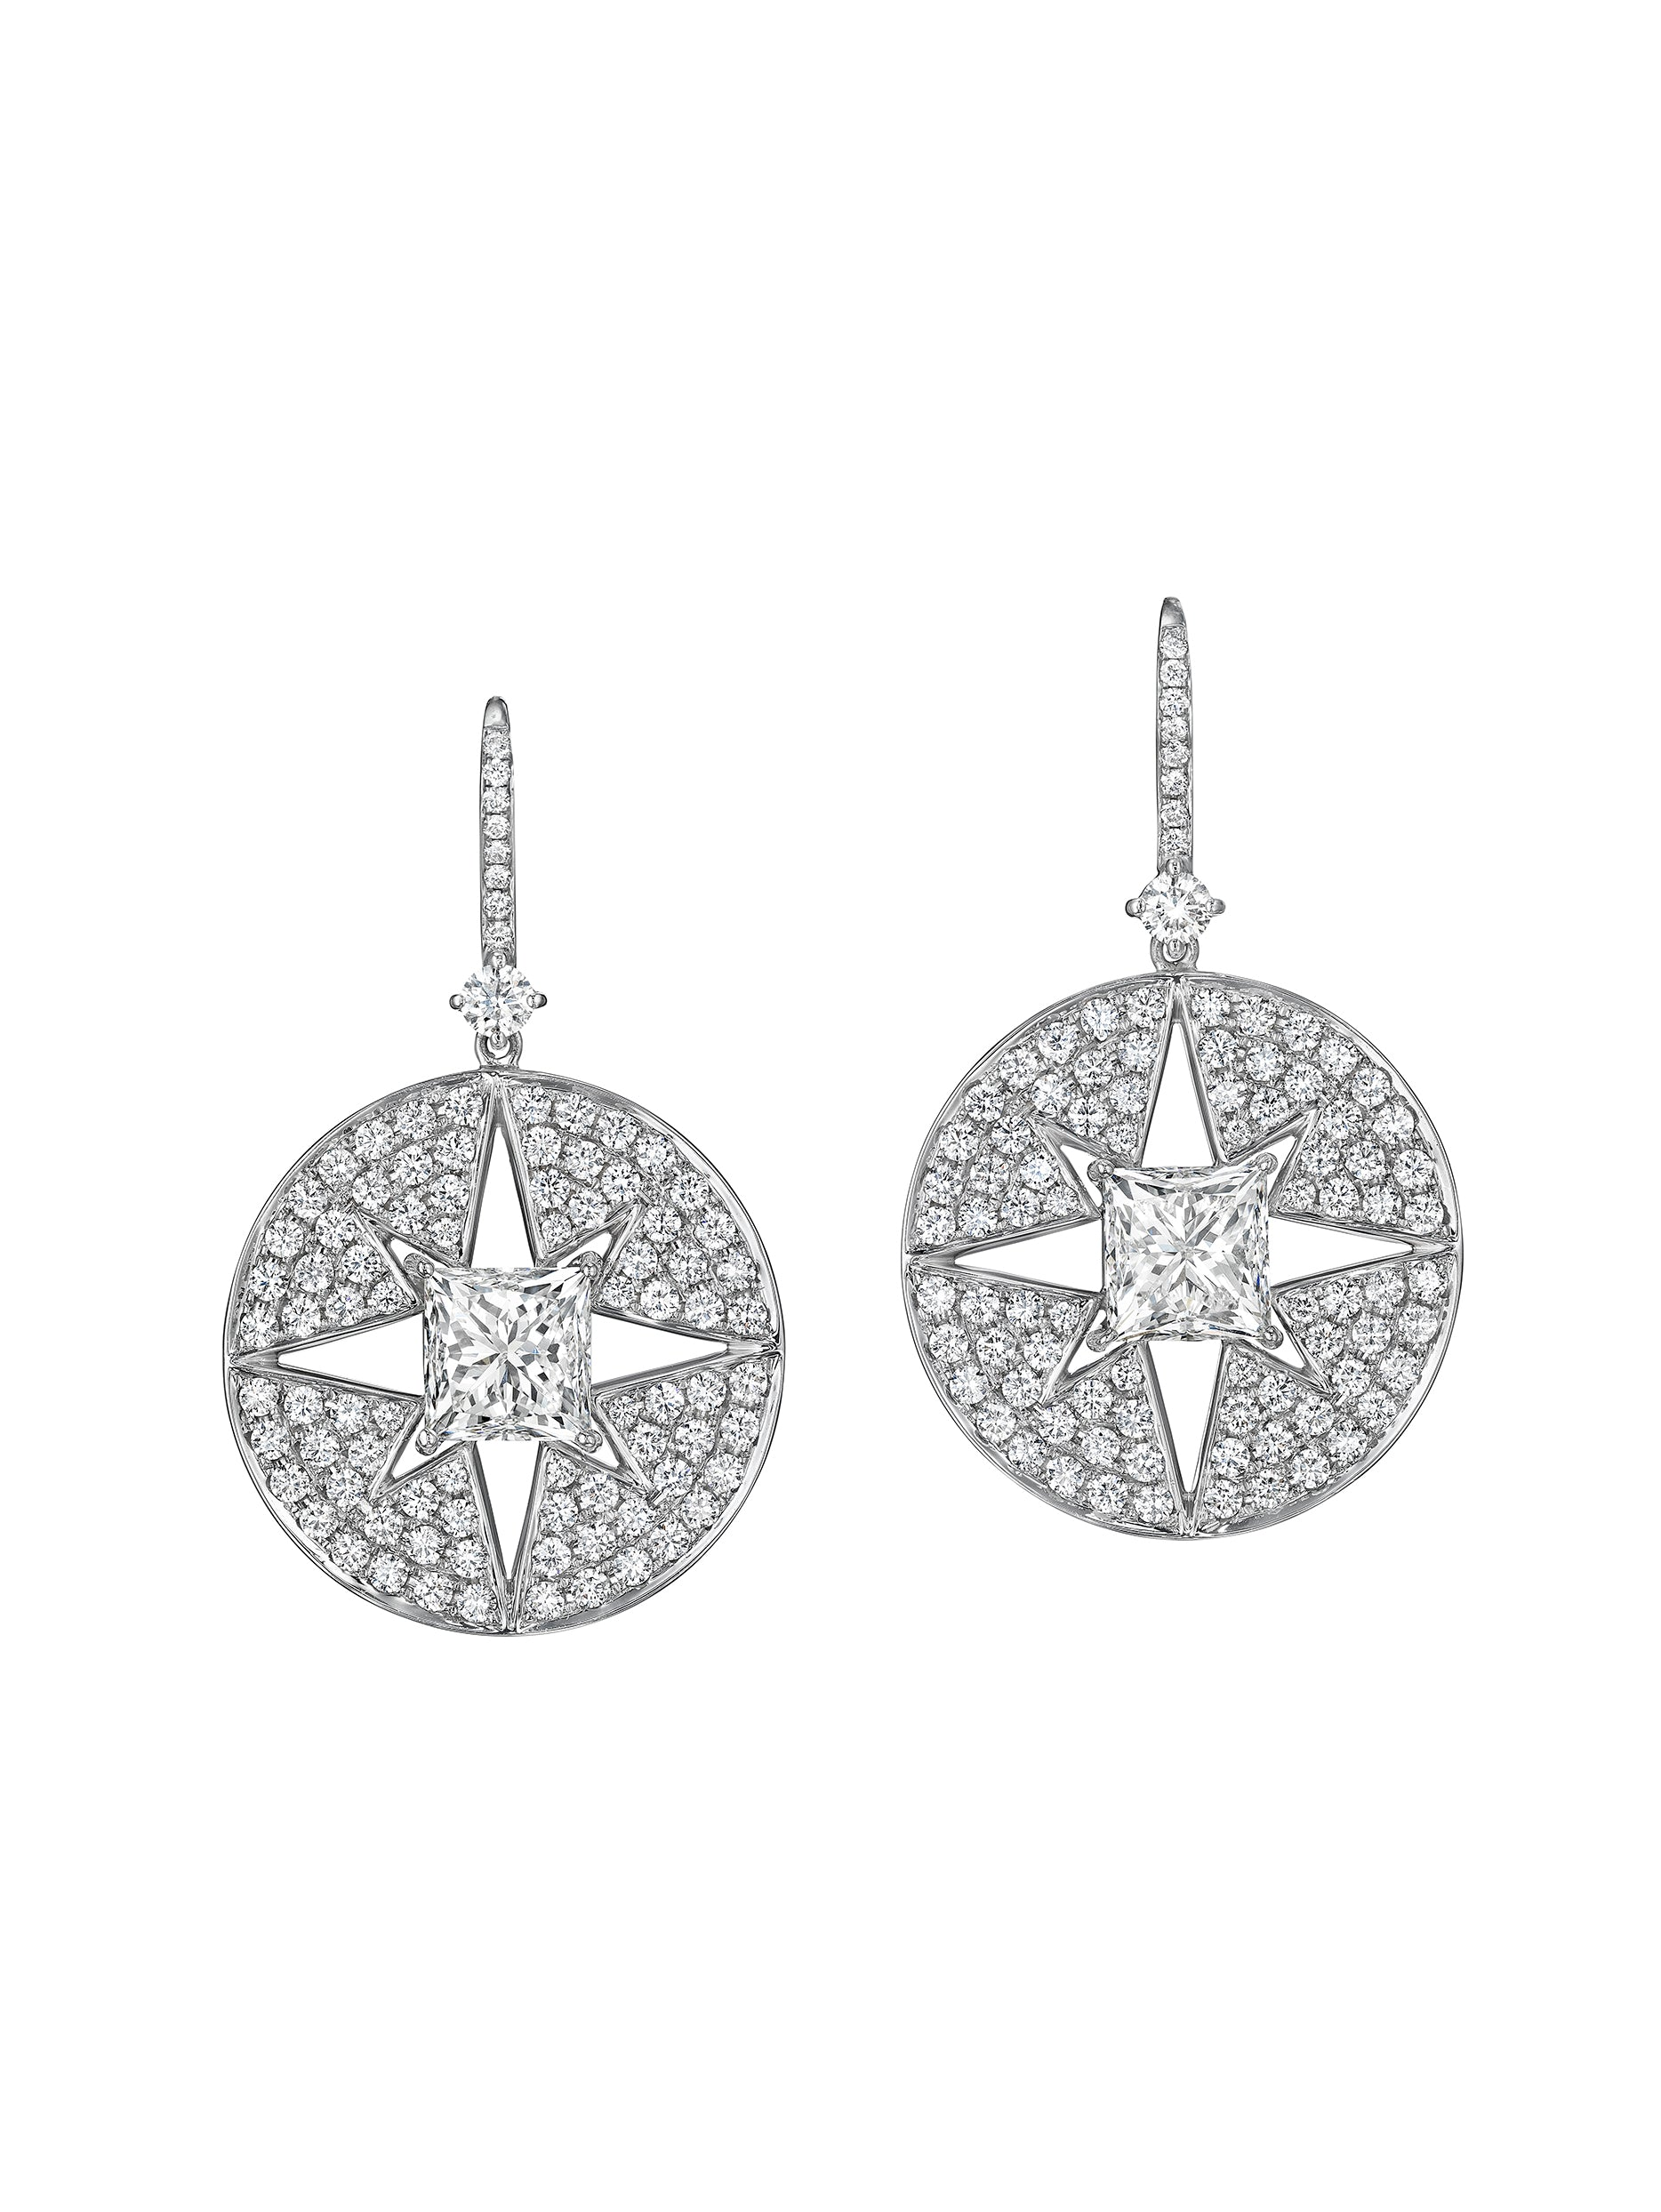 Starburst Medallion Drop Earrings